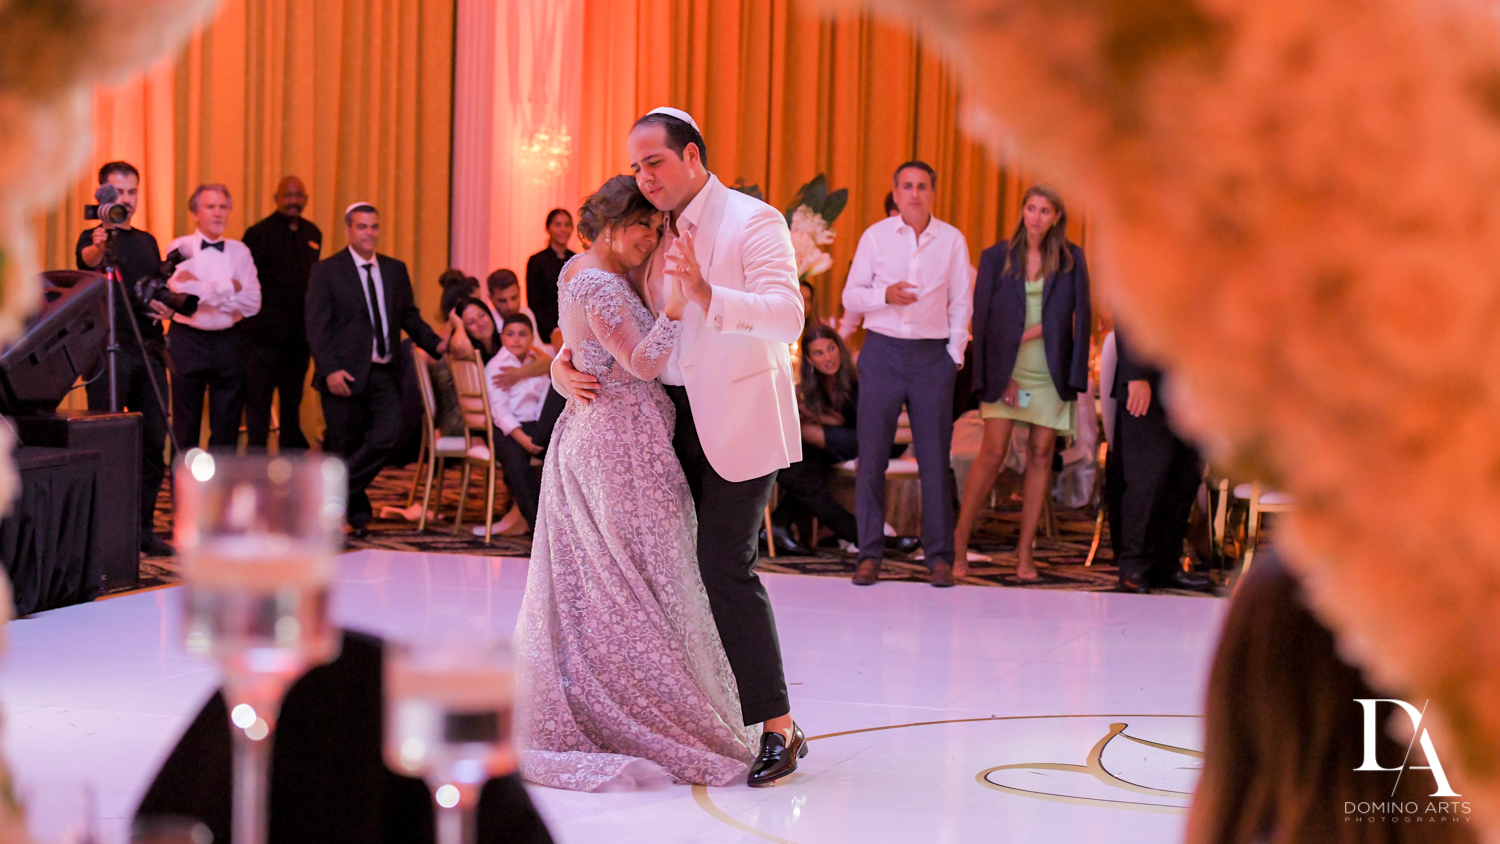 parent dance at Elegant Classy Wedding at Trump Doral by Domino Arts Photography